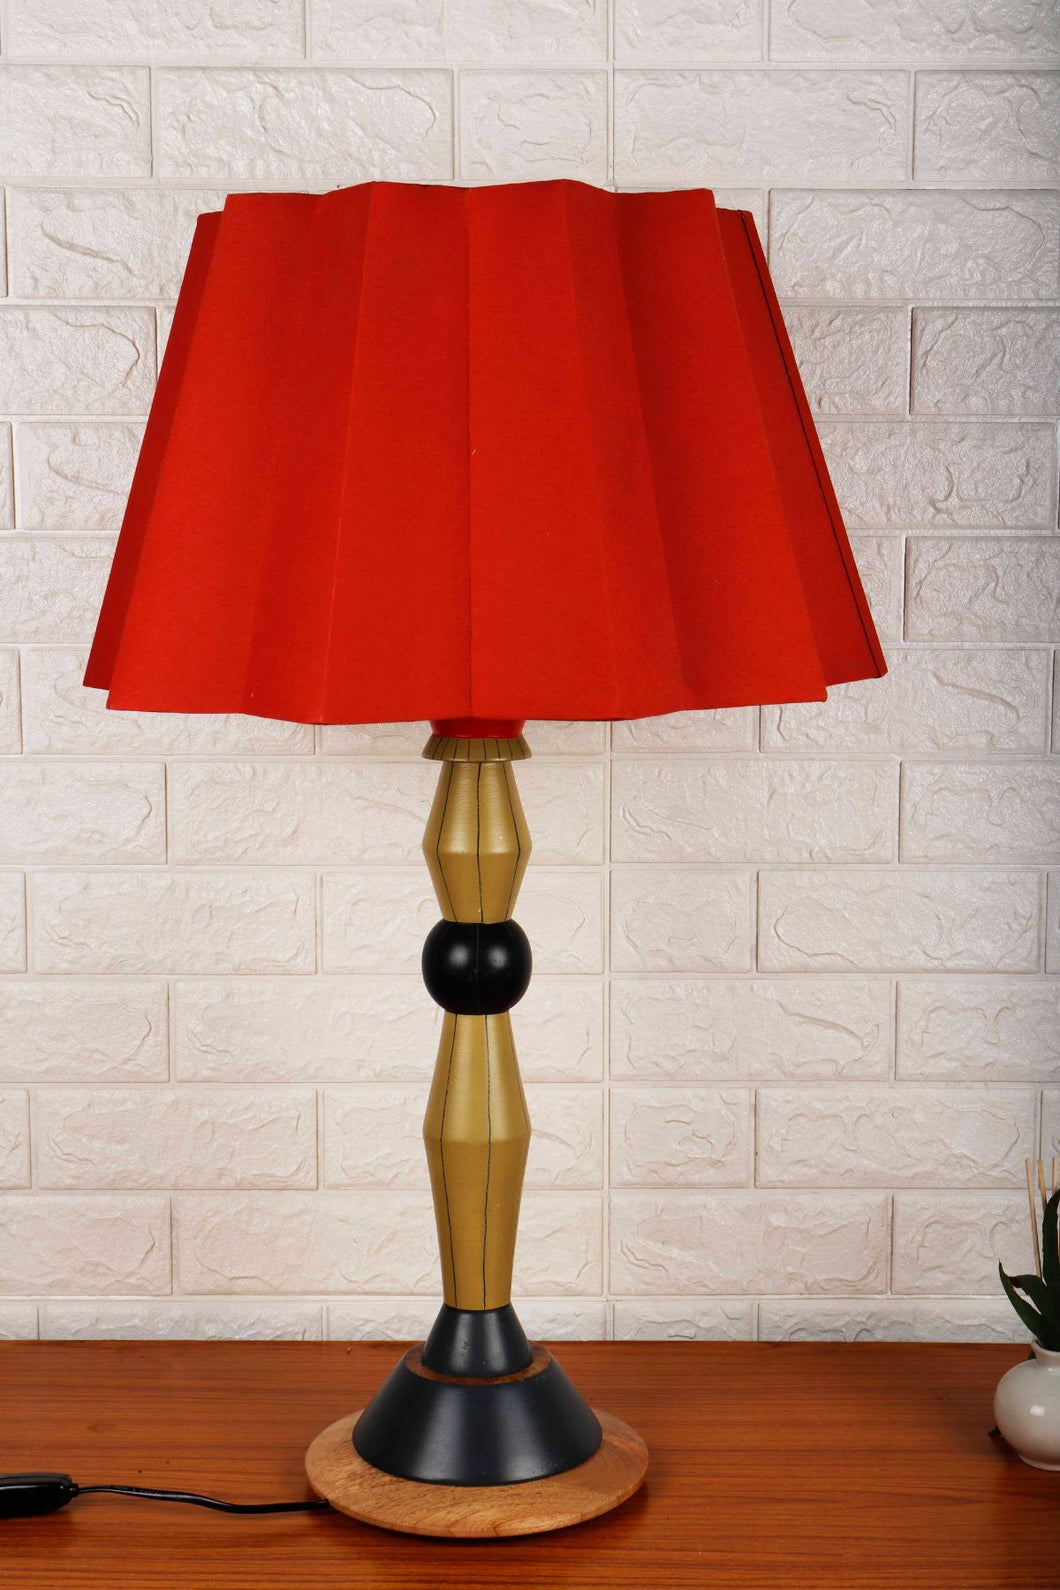 Lassie Table Lamp with Designer Red Folded Lampshade